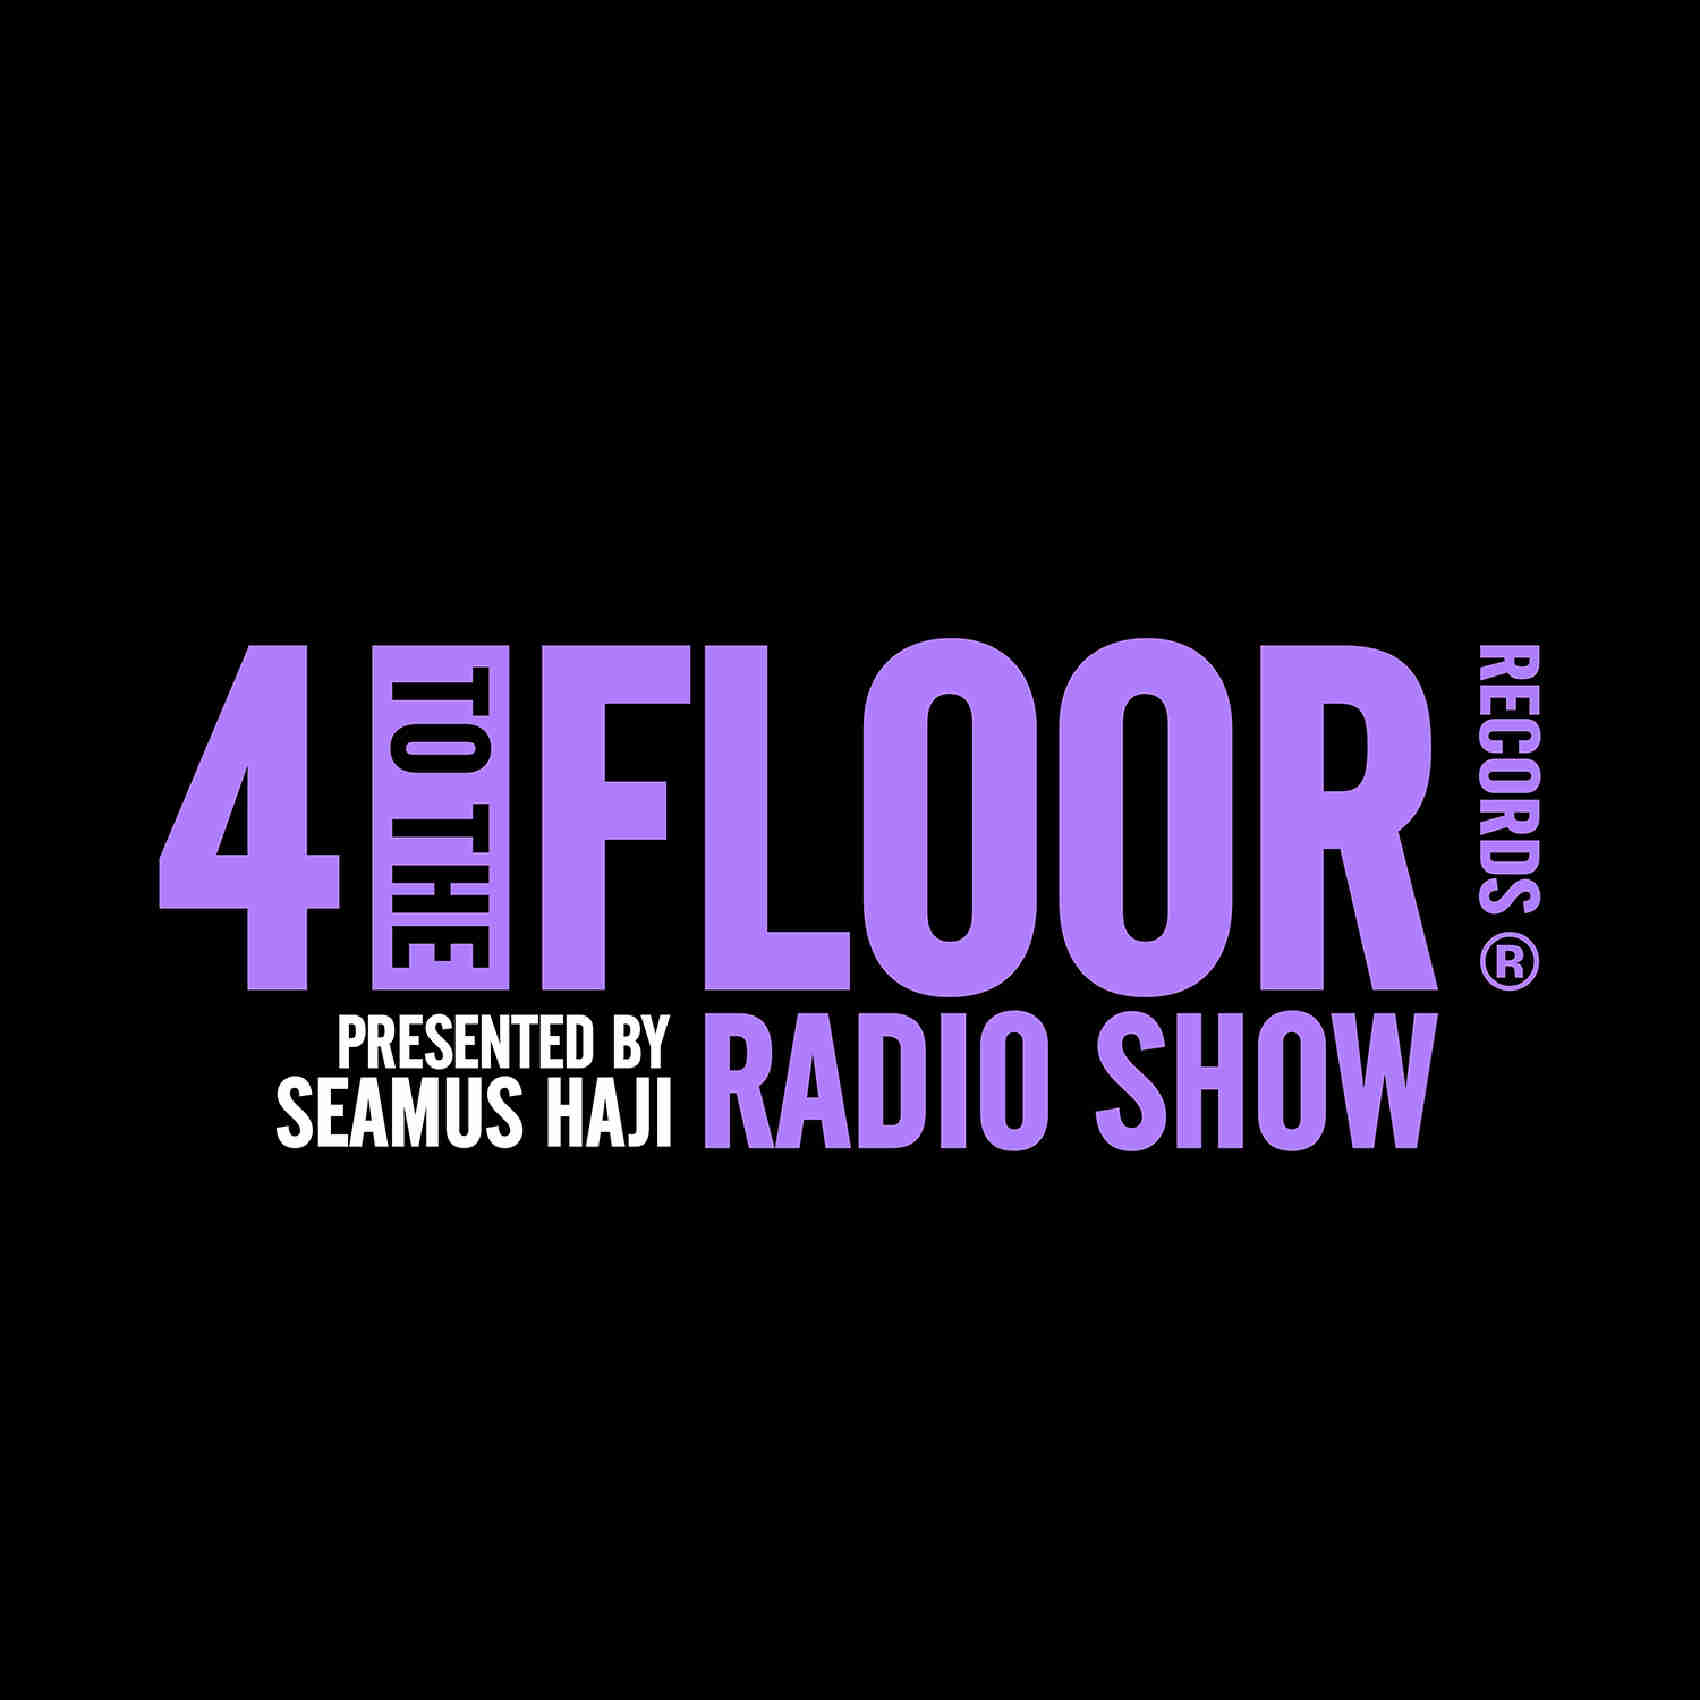 4 To The Floor Radio Show Ep 9 presented by Seamus Haji